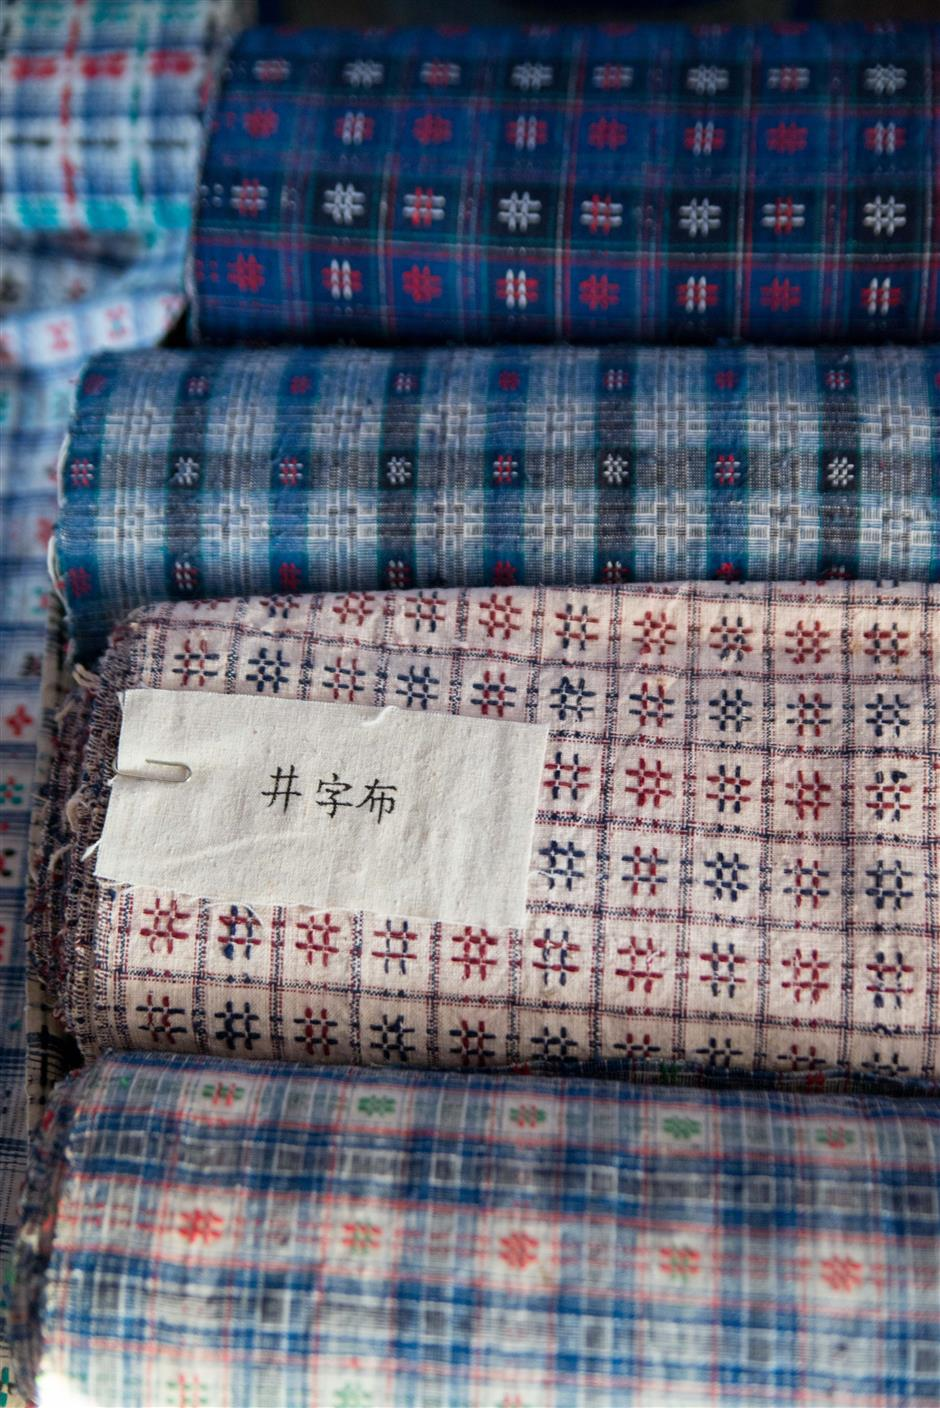 The fabric of Chongming cultural heritage is homespun